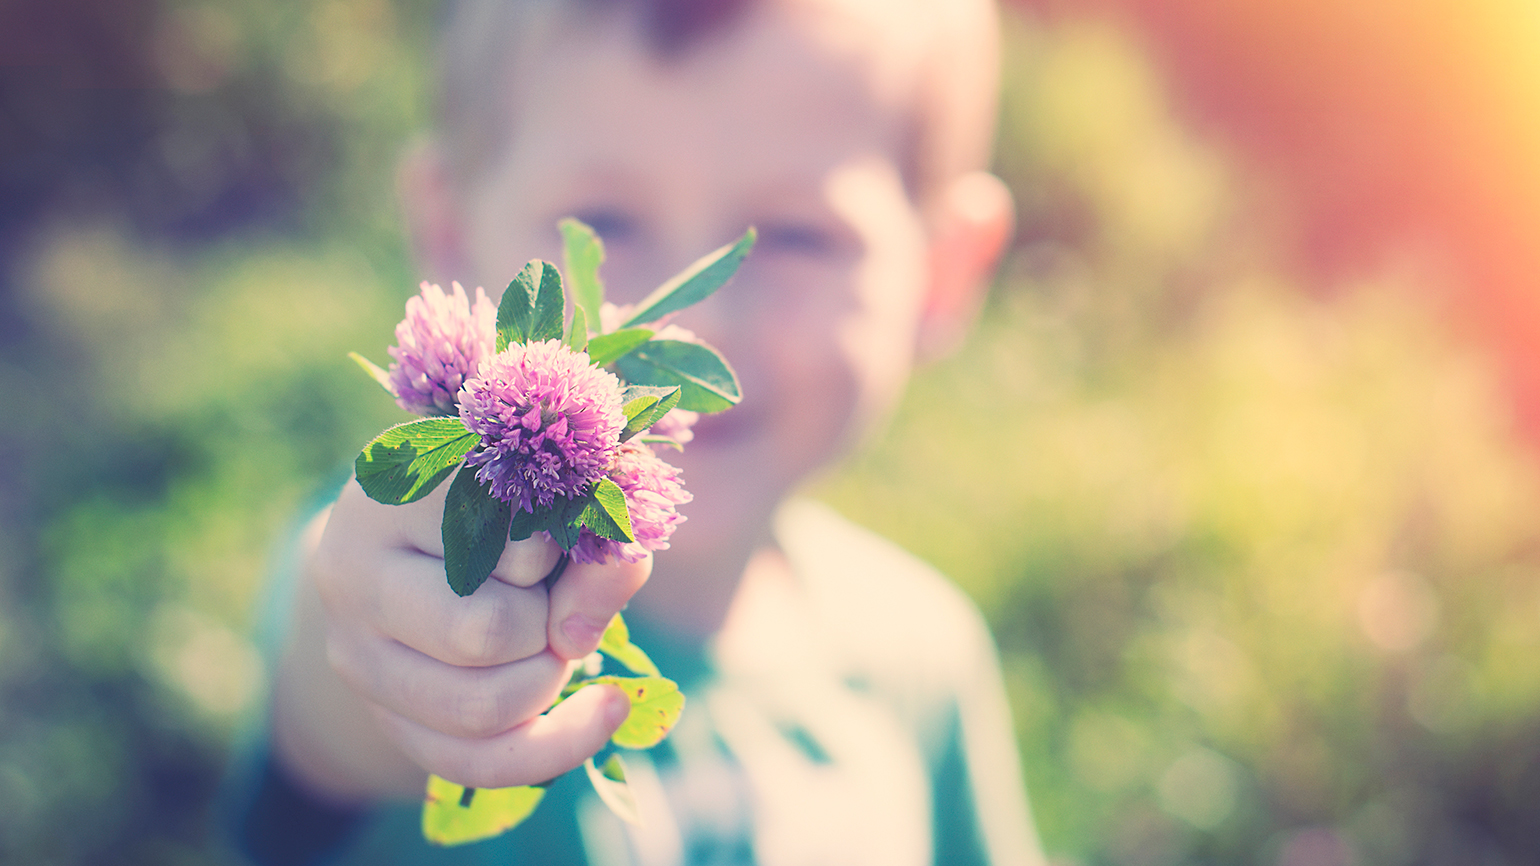 A smiling little boy holds out a freshly picked bunch of purple flowers